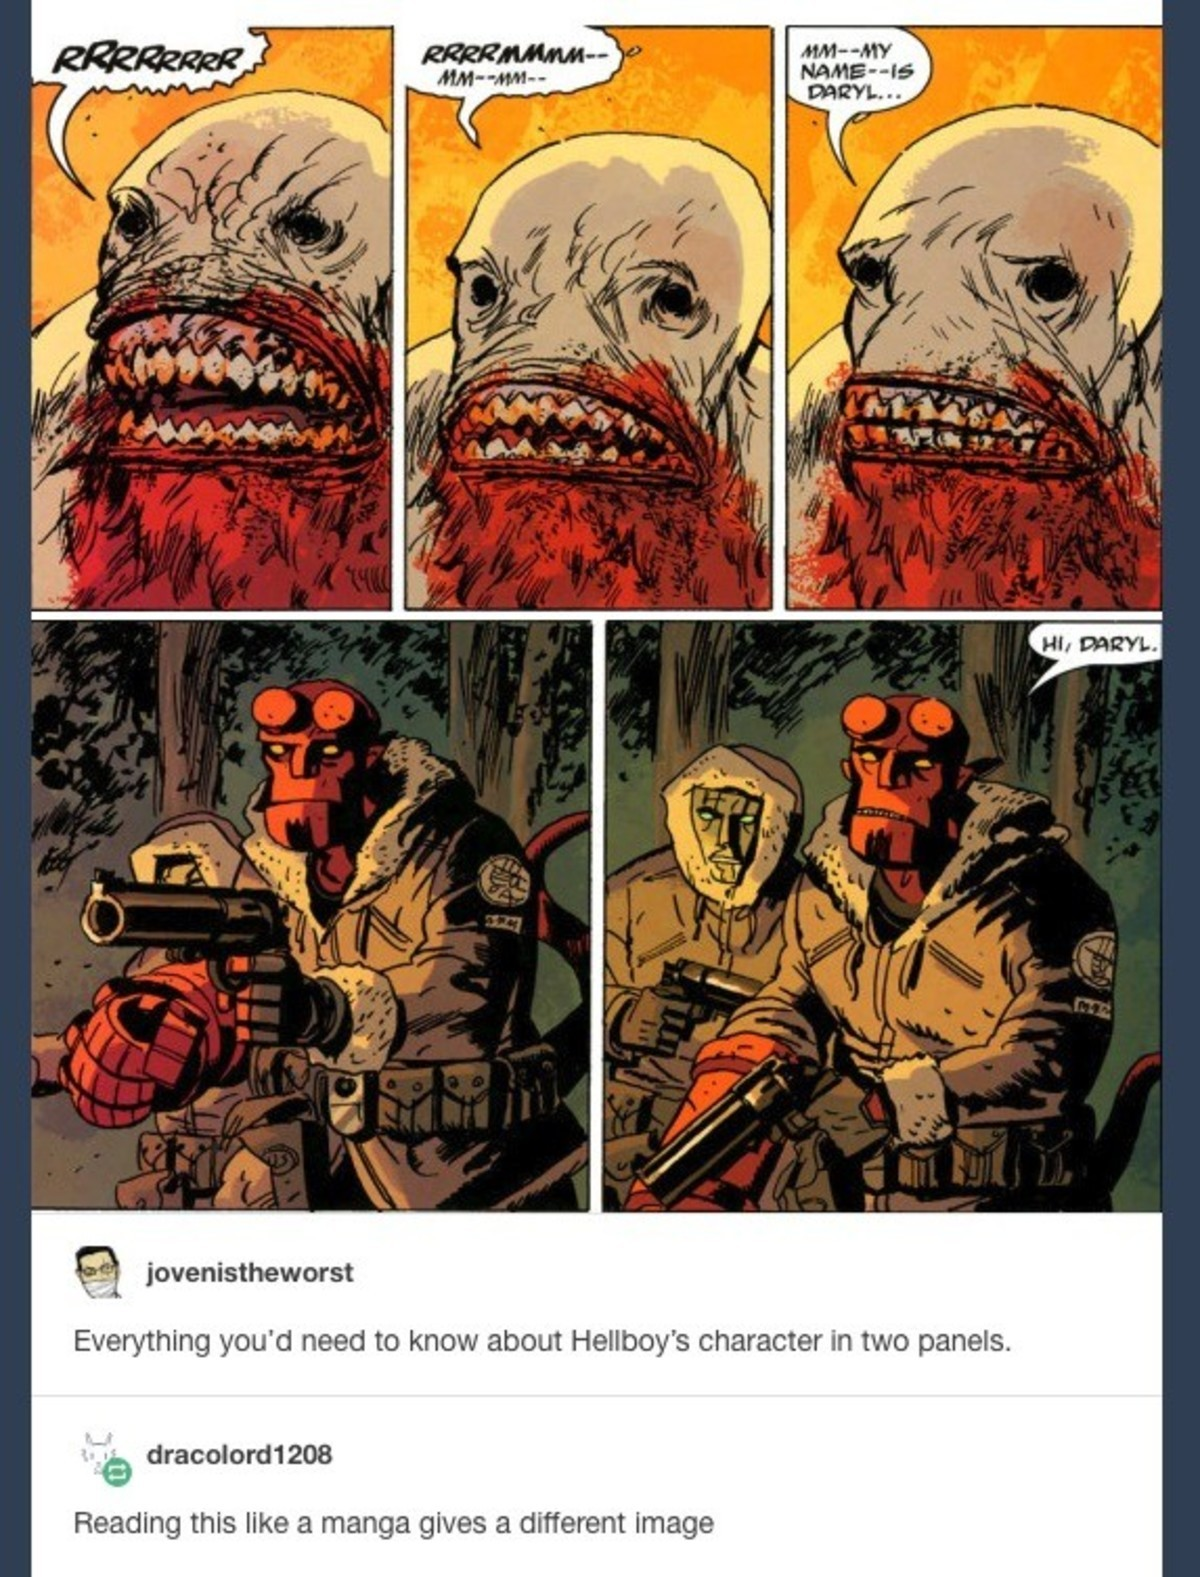 itchy gainful hollow Giraffe. .. Well the manga version is also within the reality of a plausible hellboy situation